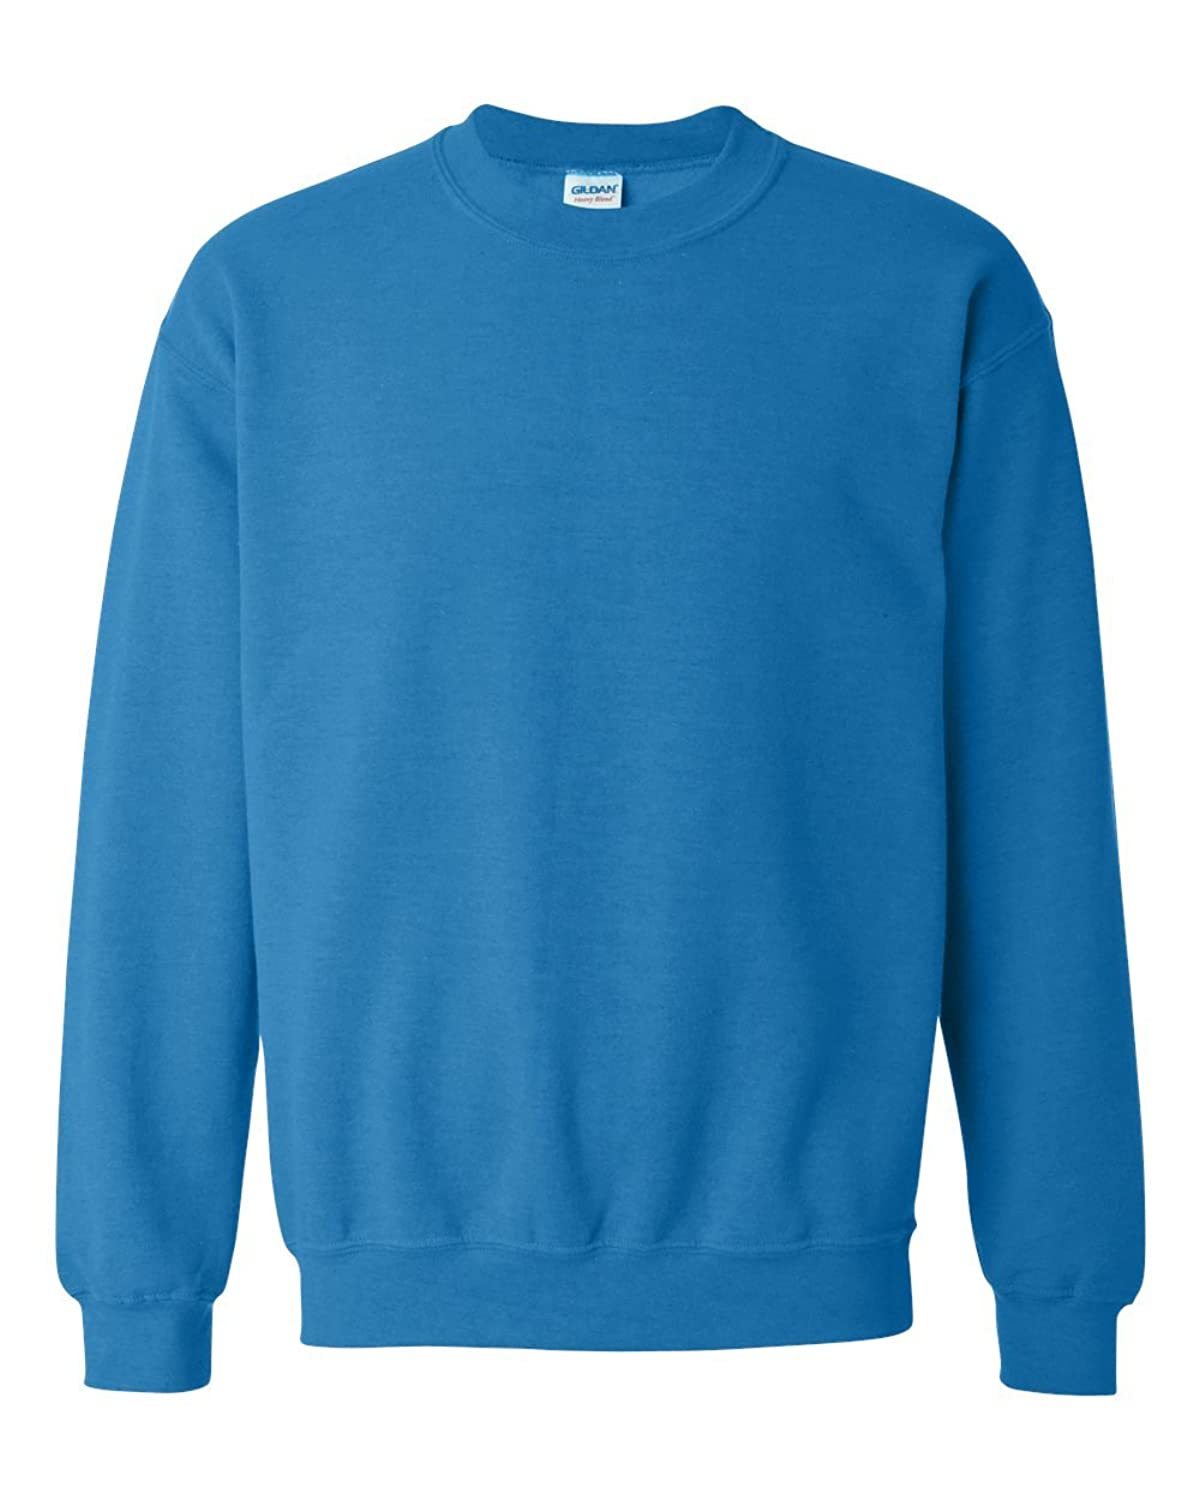 Sweater Blue Baggage Clothing